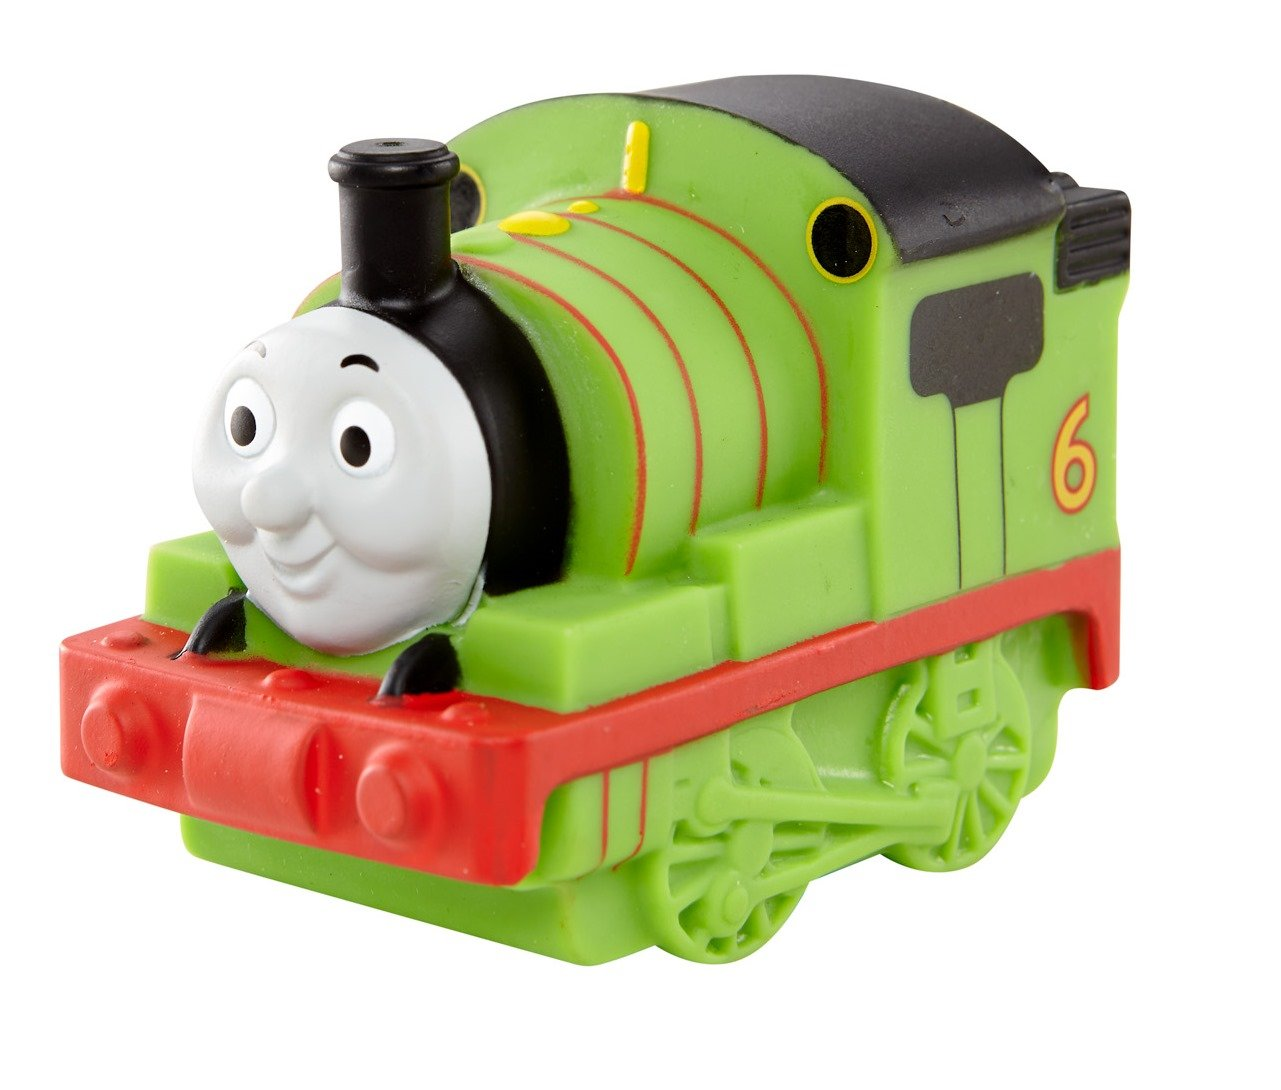 Amazon.com: Thomas & Friends Fisher-Price My First Percy Bath ...